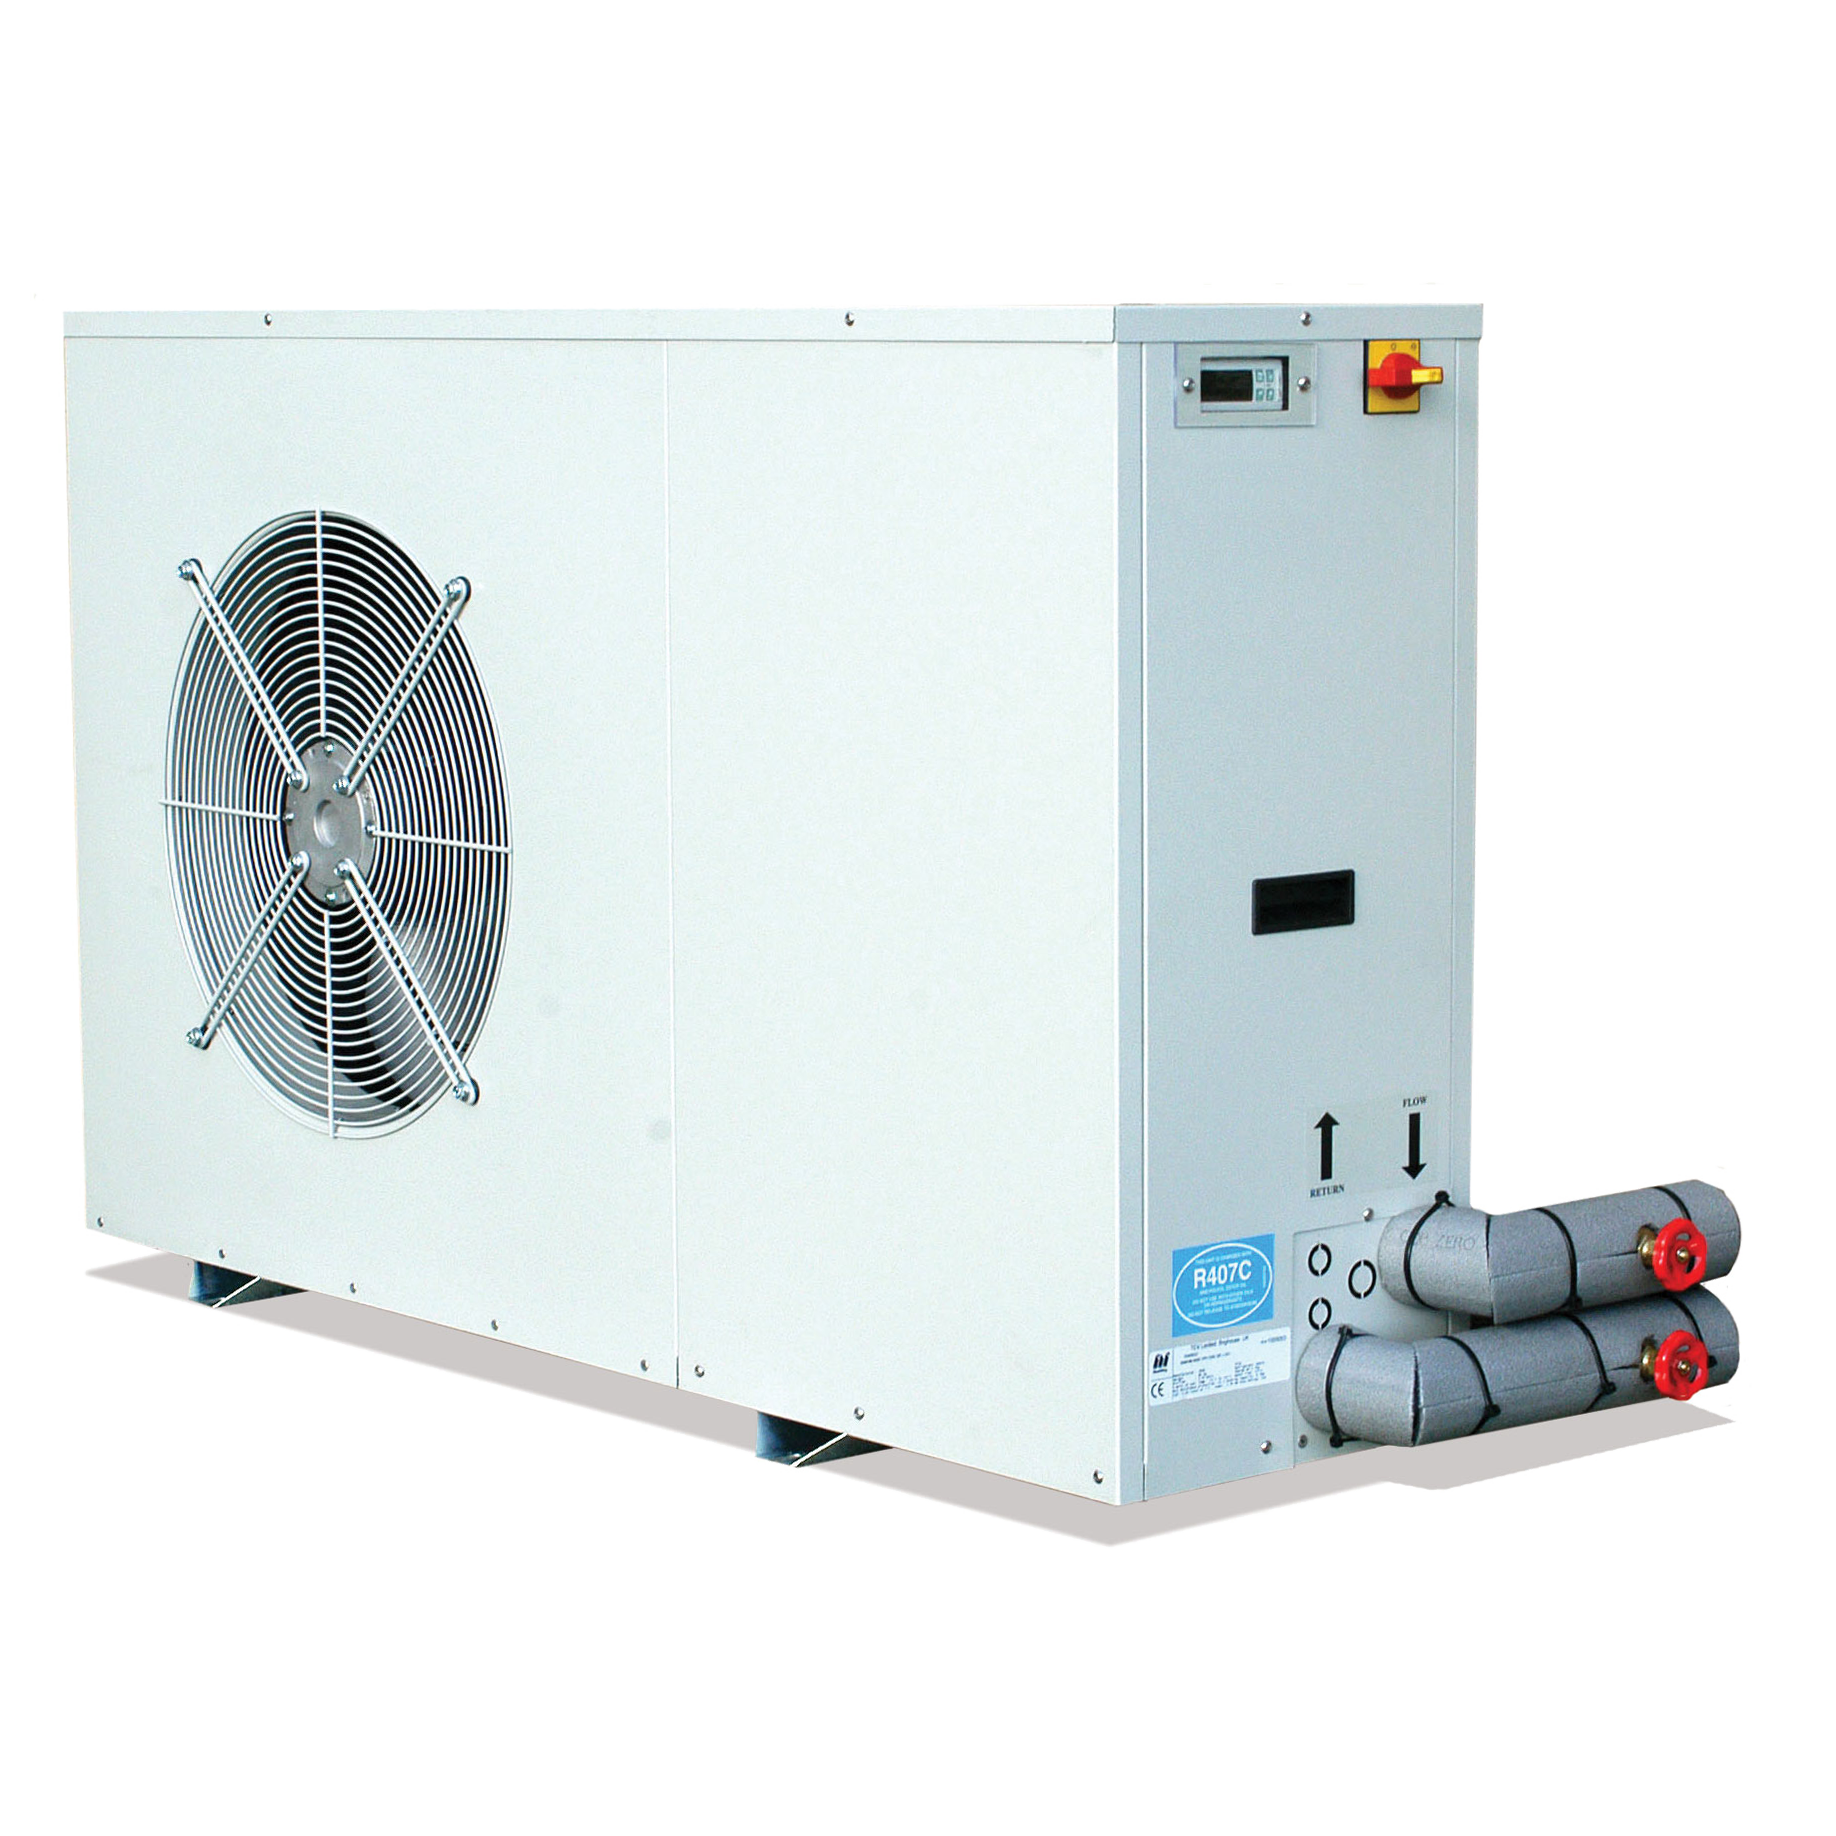 eat pump Shop the largest selection wholesale ac & heating products available for purchase online, direct to the public free nationwide shipping included.